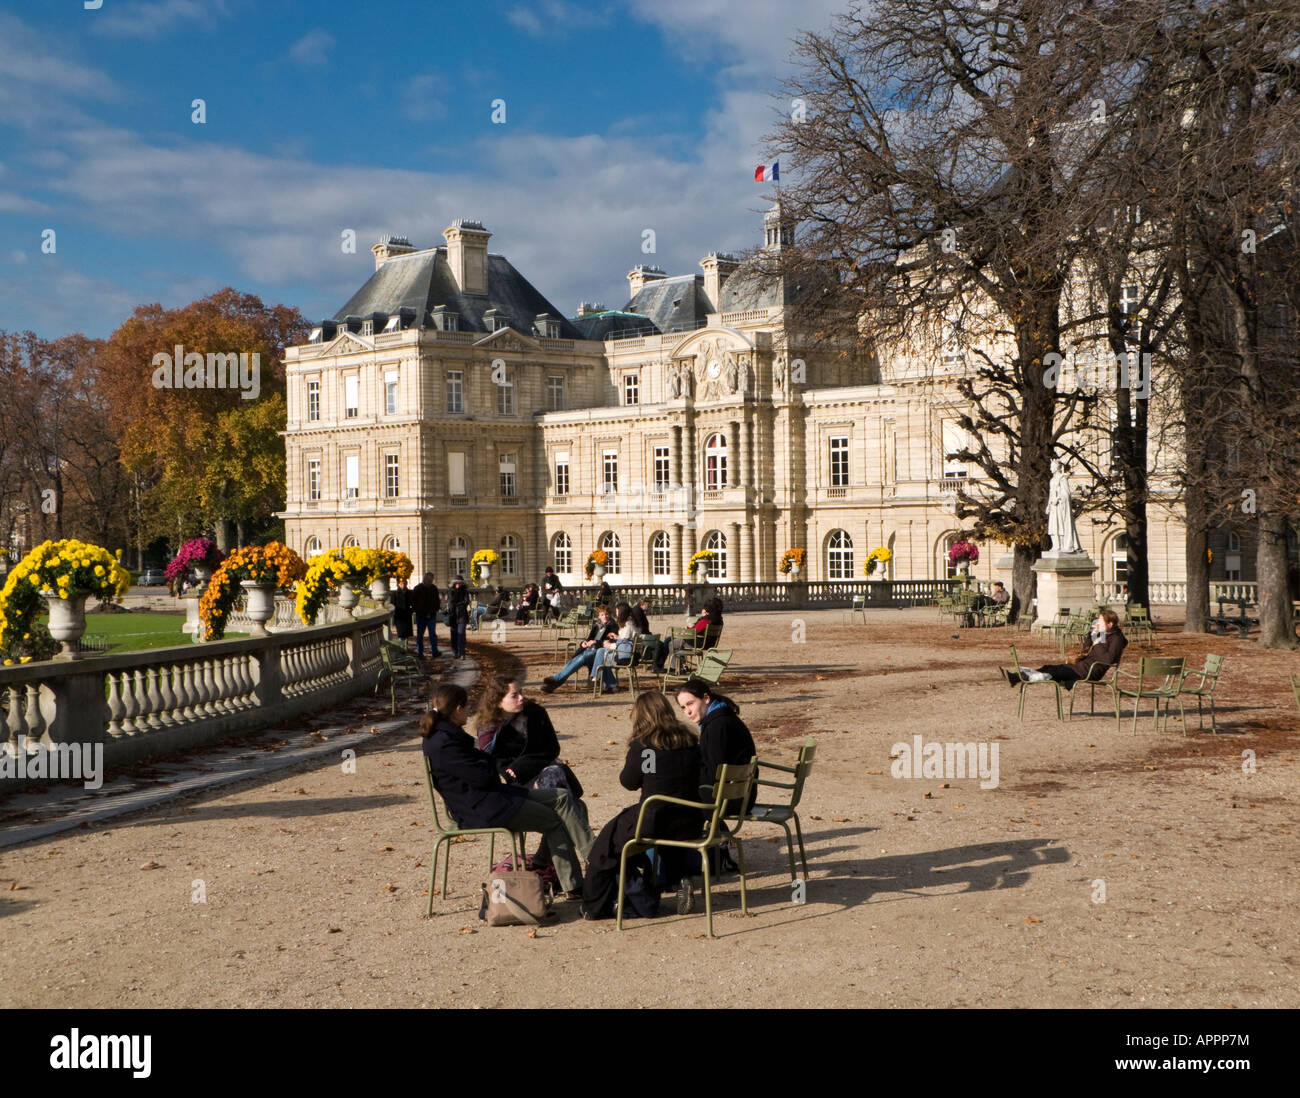 Jardin du Luxembourg gardens and palace with students sitting talking together, Paris - Stock Image